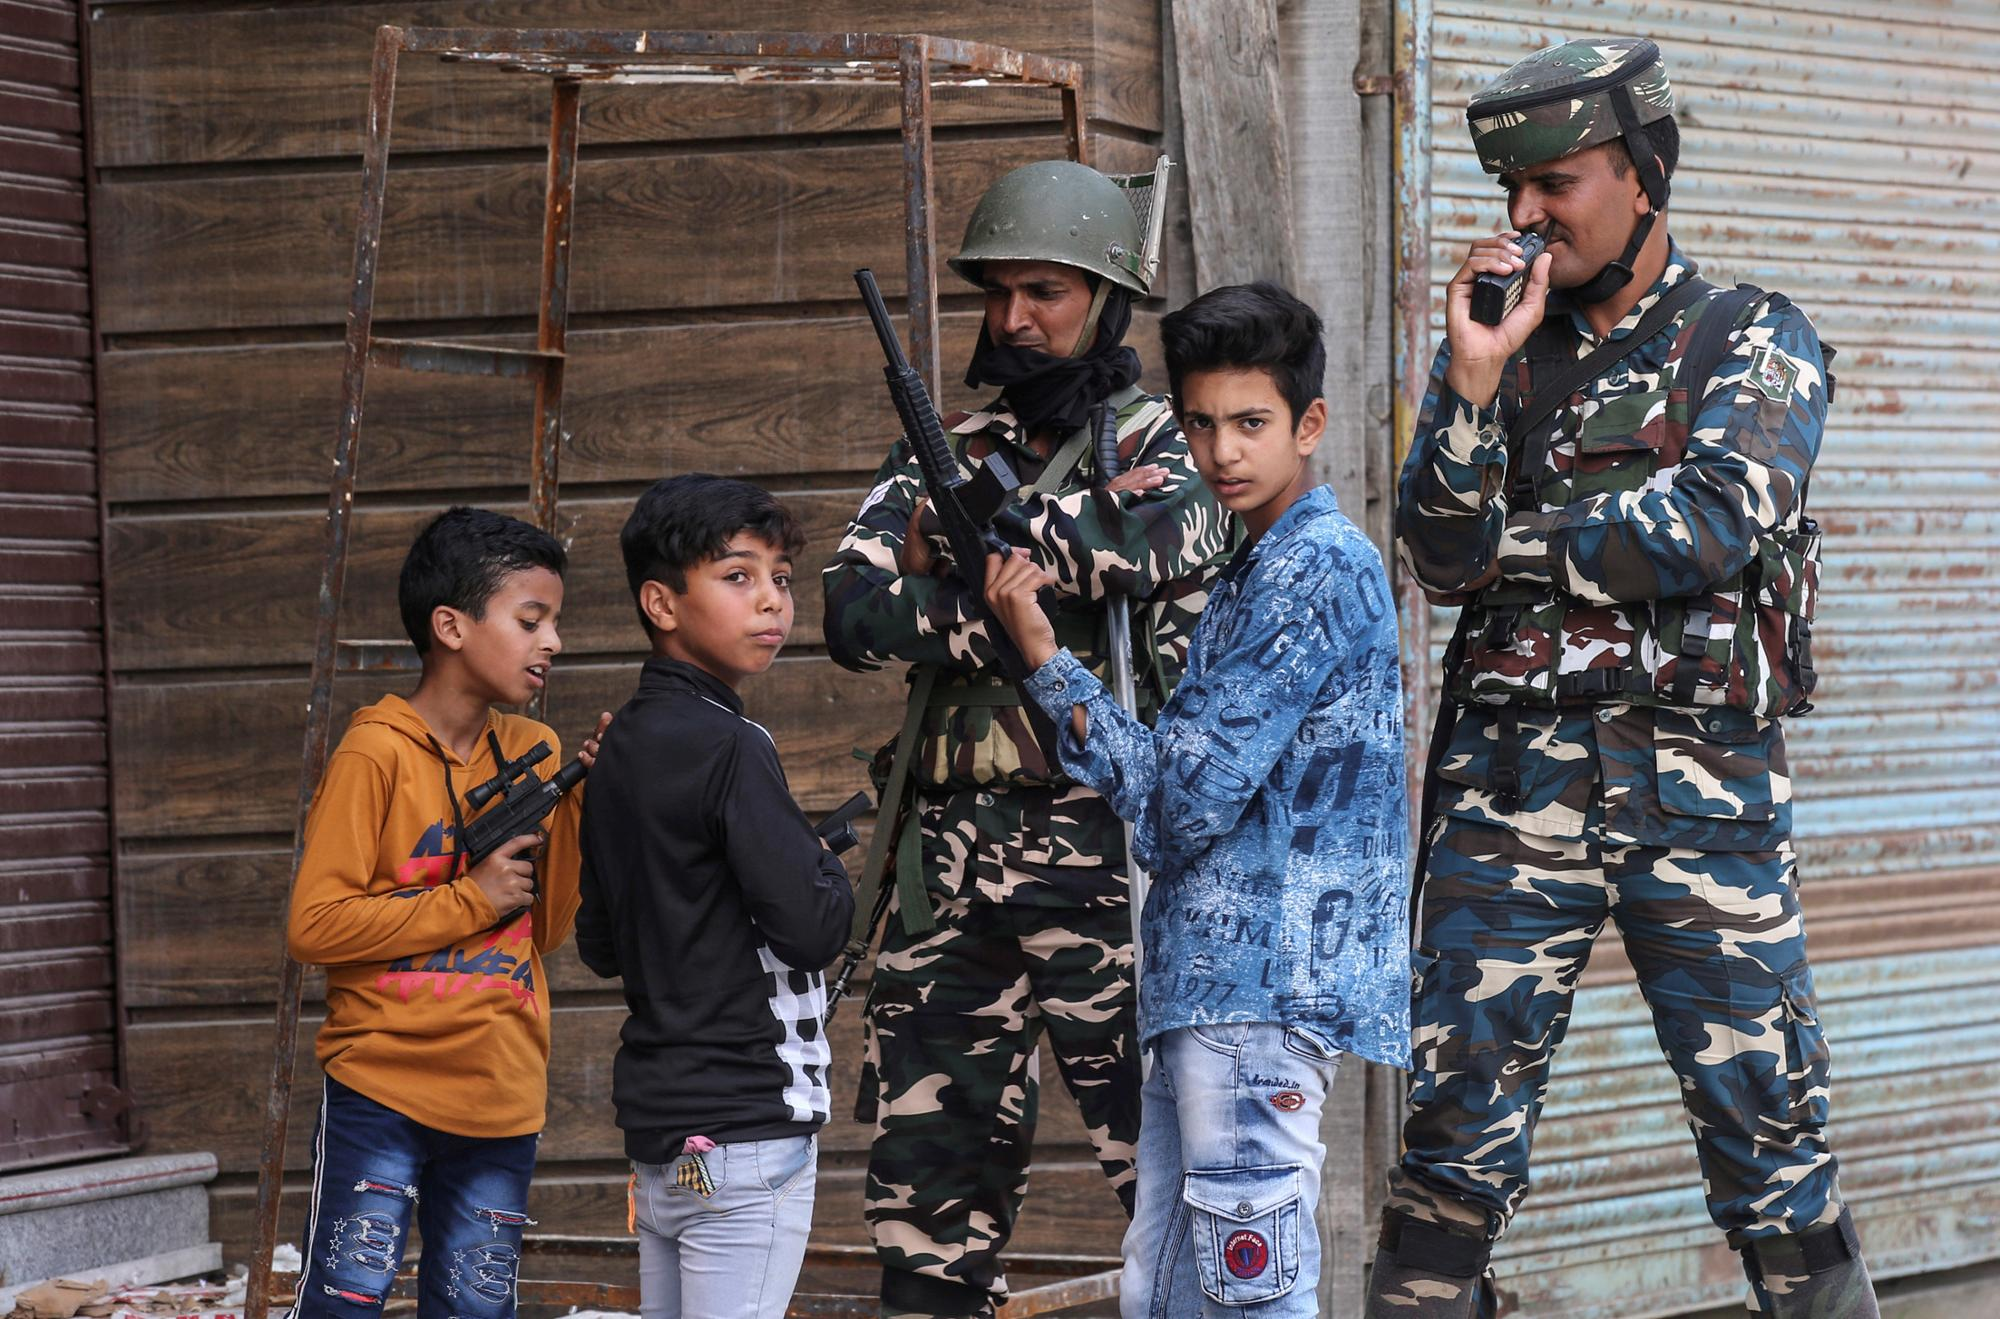 Children play with toy guns next to Indian security force personnel during restrictions after the scrapping of the special constitutional status for Kashmir by the government, in Srinagar, August 13, 2019. REUTERS/Danish Ismail